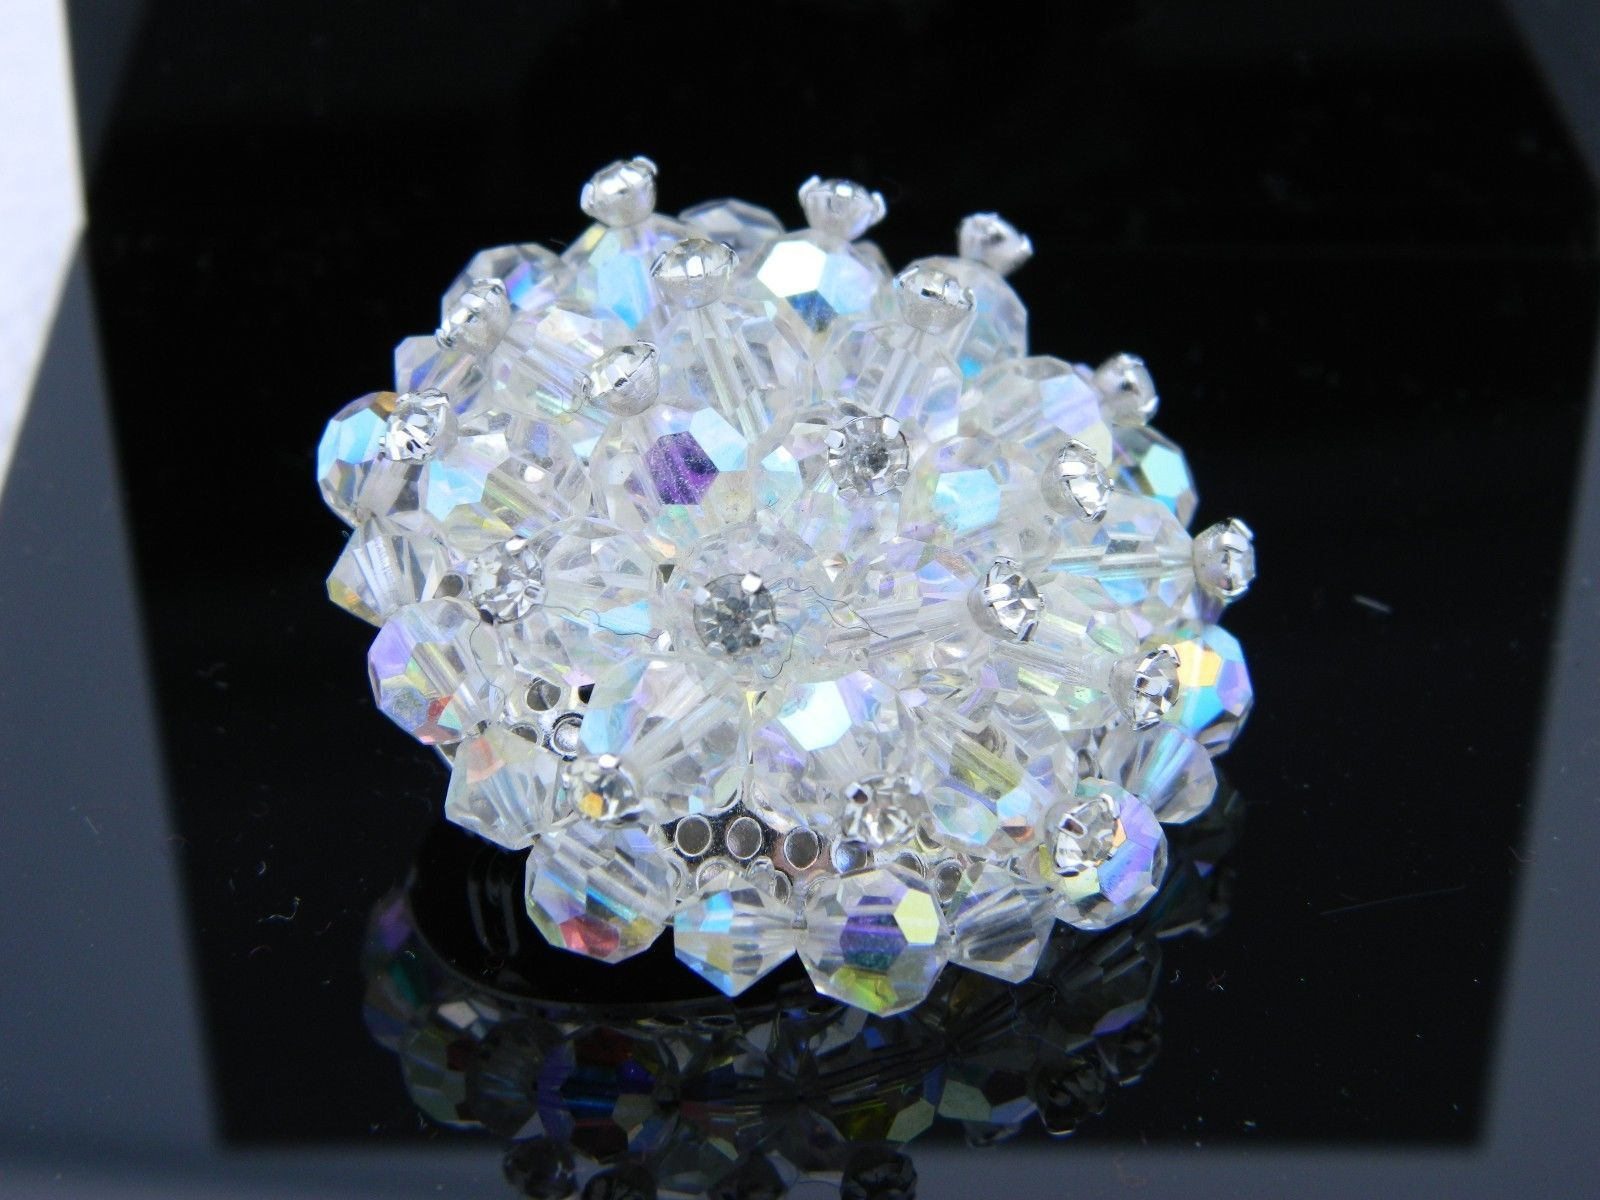 VTG RARE Clear AB Demi Parure Crystal Rhinestone Accented Glass Pin Brooch  (C)